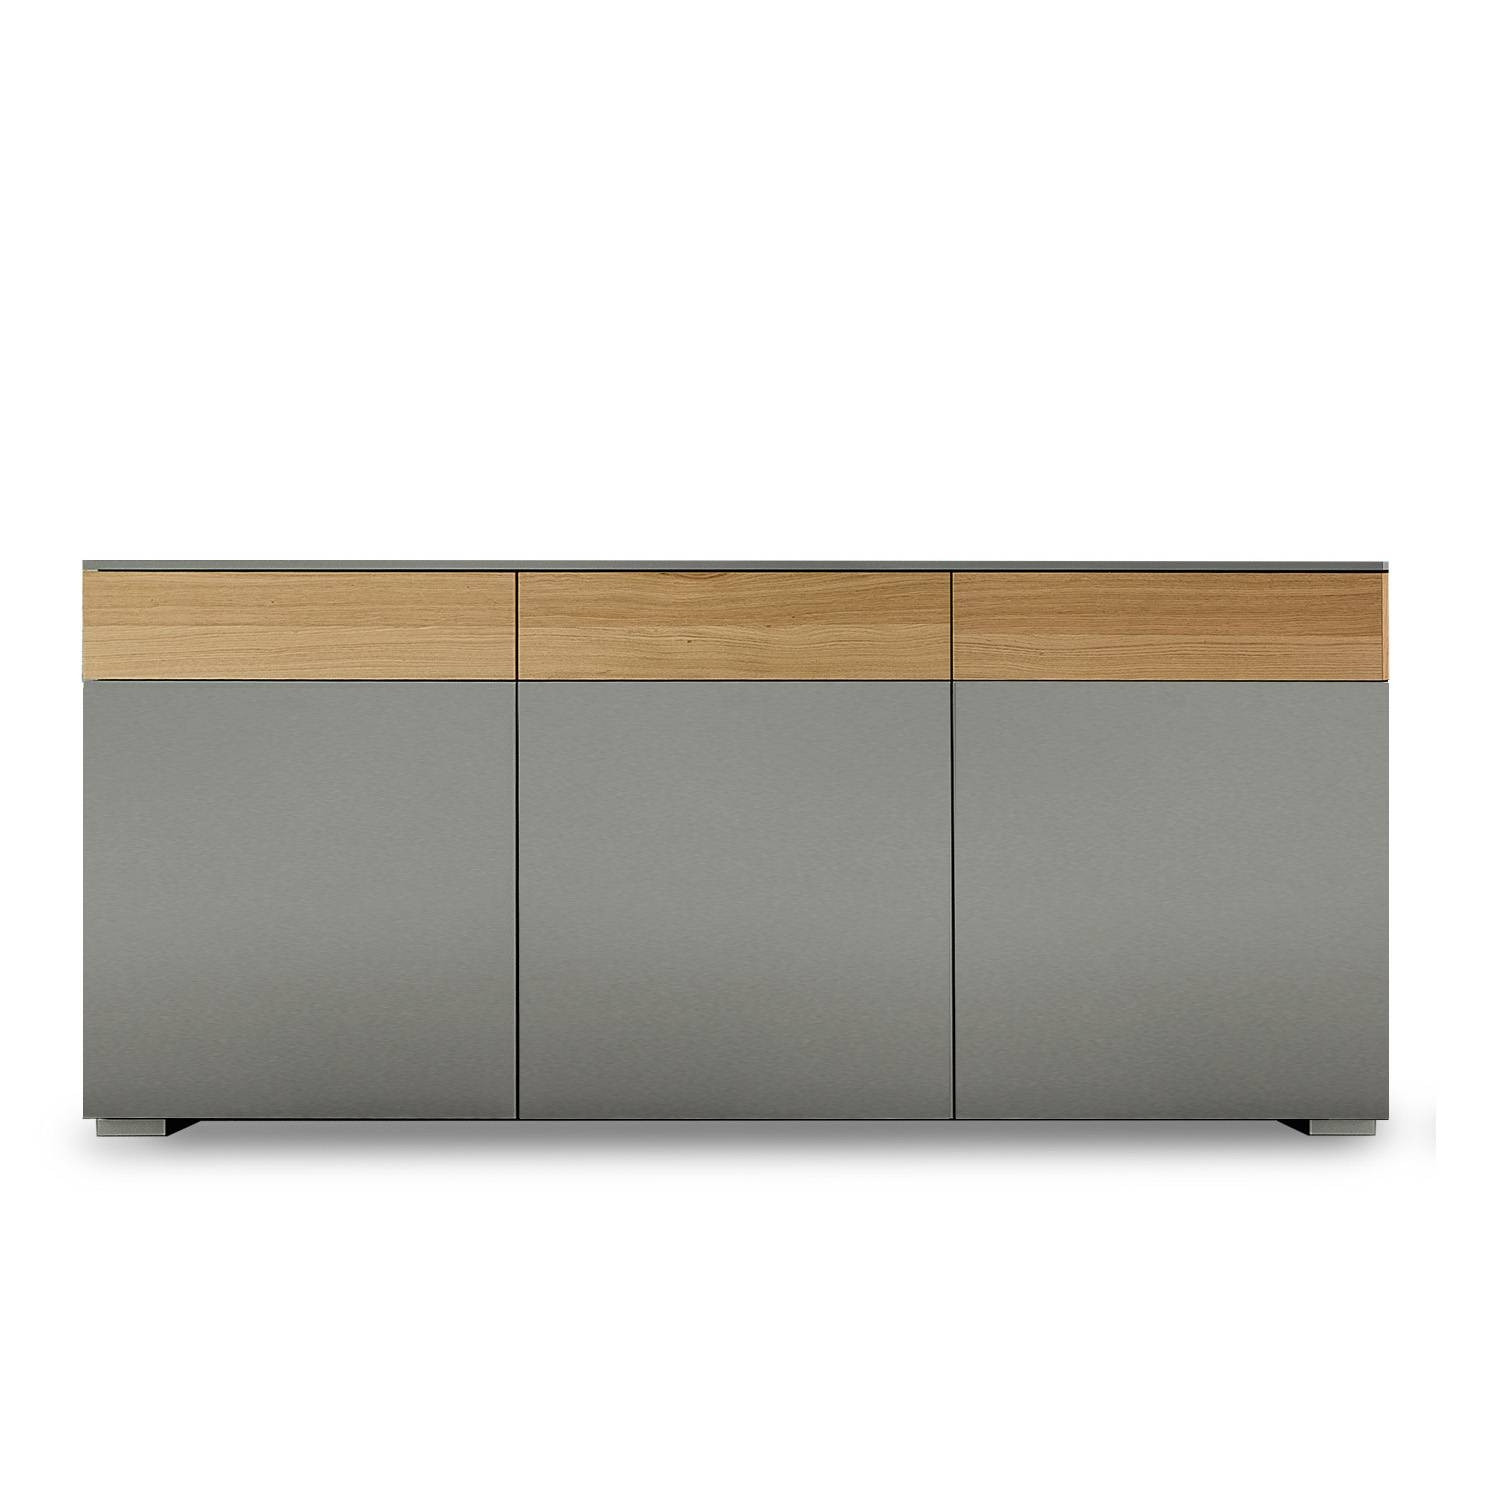 Large Modern Italian Sideboard, L 192 - W 48 - H 80 Cm + Feet At pertaining to Slim Sideboards (Image 17 of 30)